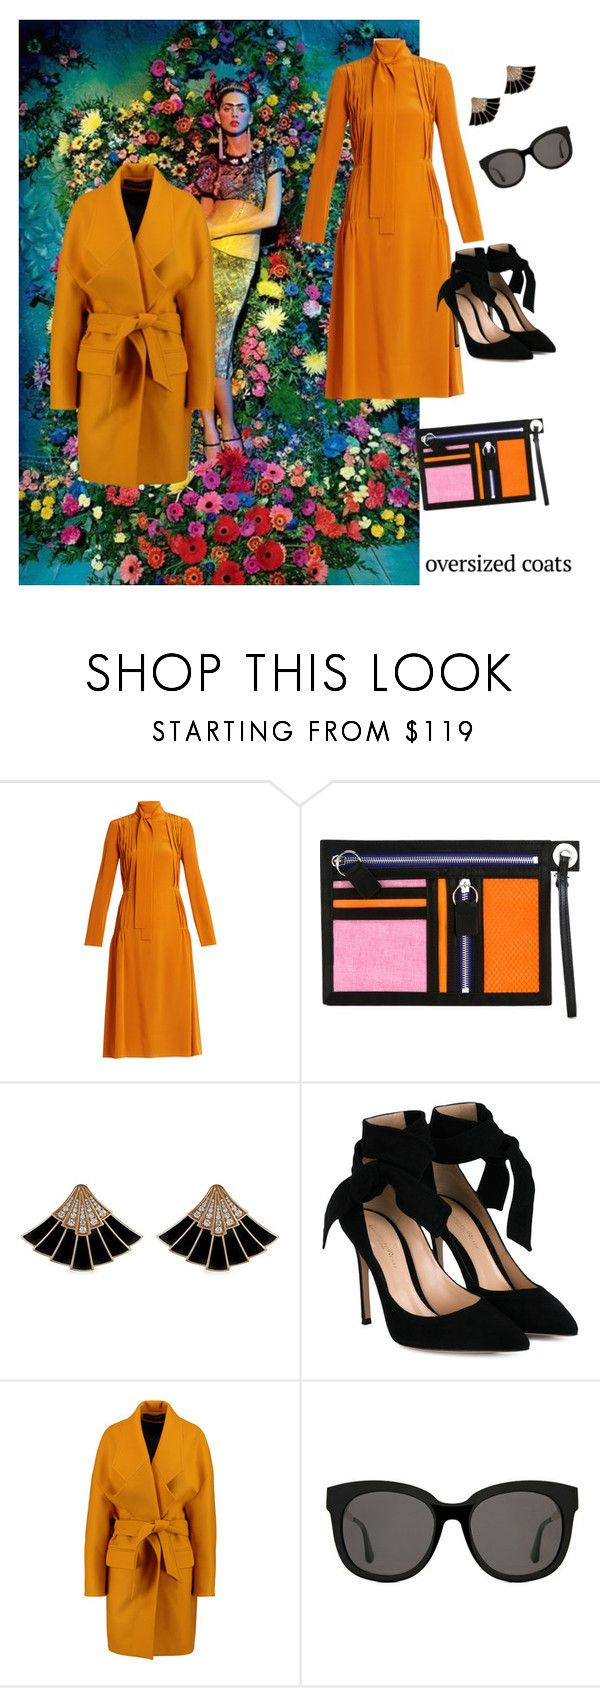 """👗Oversized coats"" by ec300 ❤ liked on Polyvore featuring Rochas, Kenzo, Gianvito Rossi, Balmain and Gentle Monster"